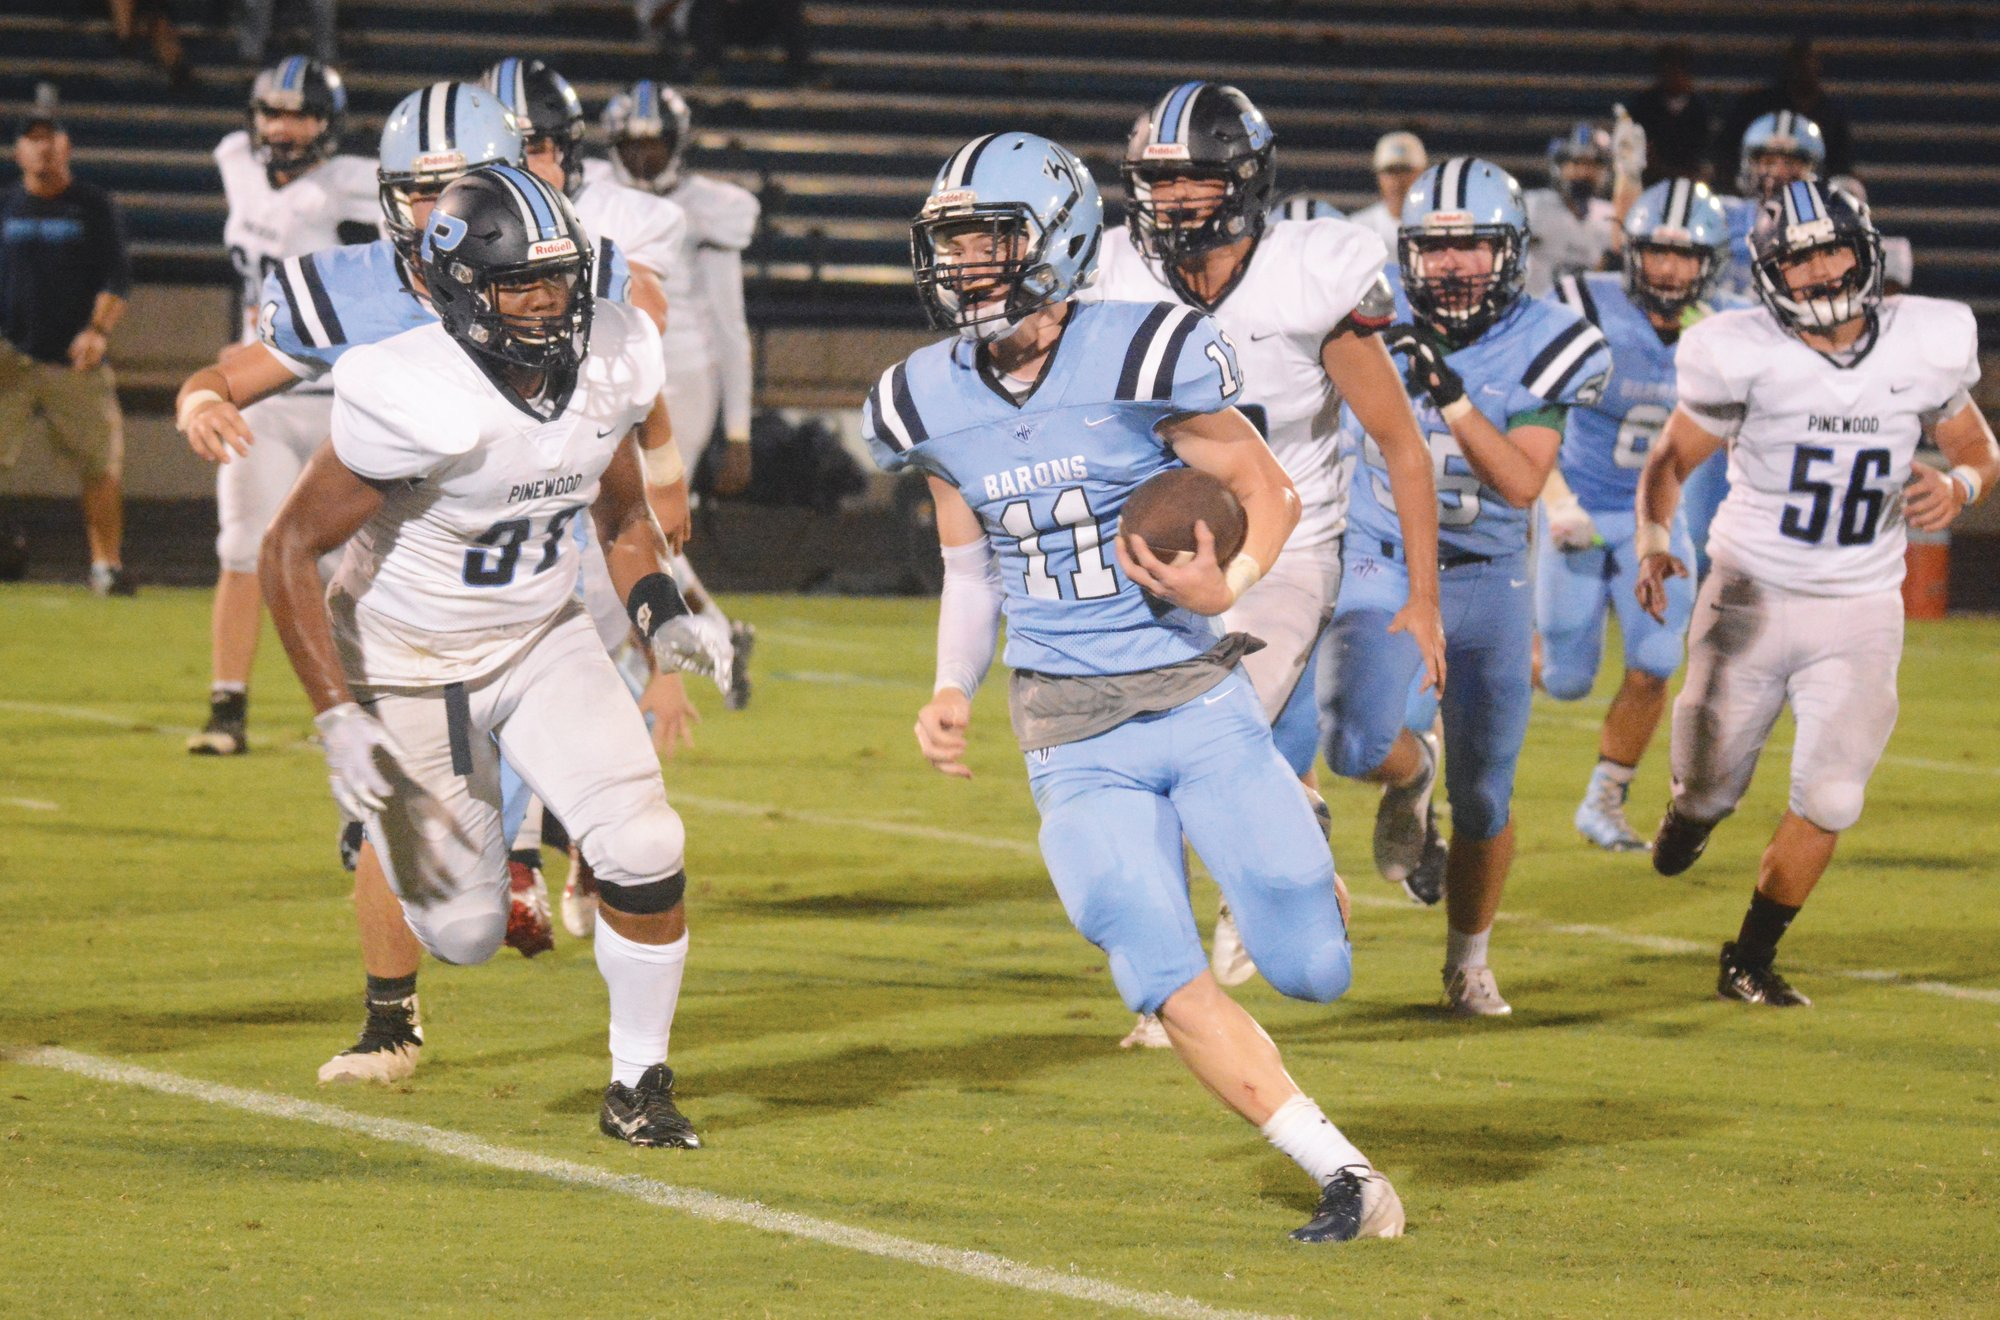 Wilson Hall's Emory Moore (11) ran for 150 yards and two scores, while also catching two passes for 42 yards in last week's 30-14 win over Pinewood Prep. He'll look to build on that strong performance as the Barons host Ben Lippen on Friday.